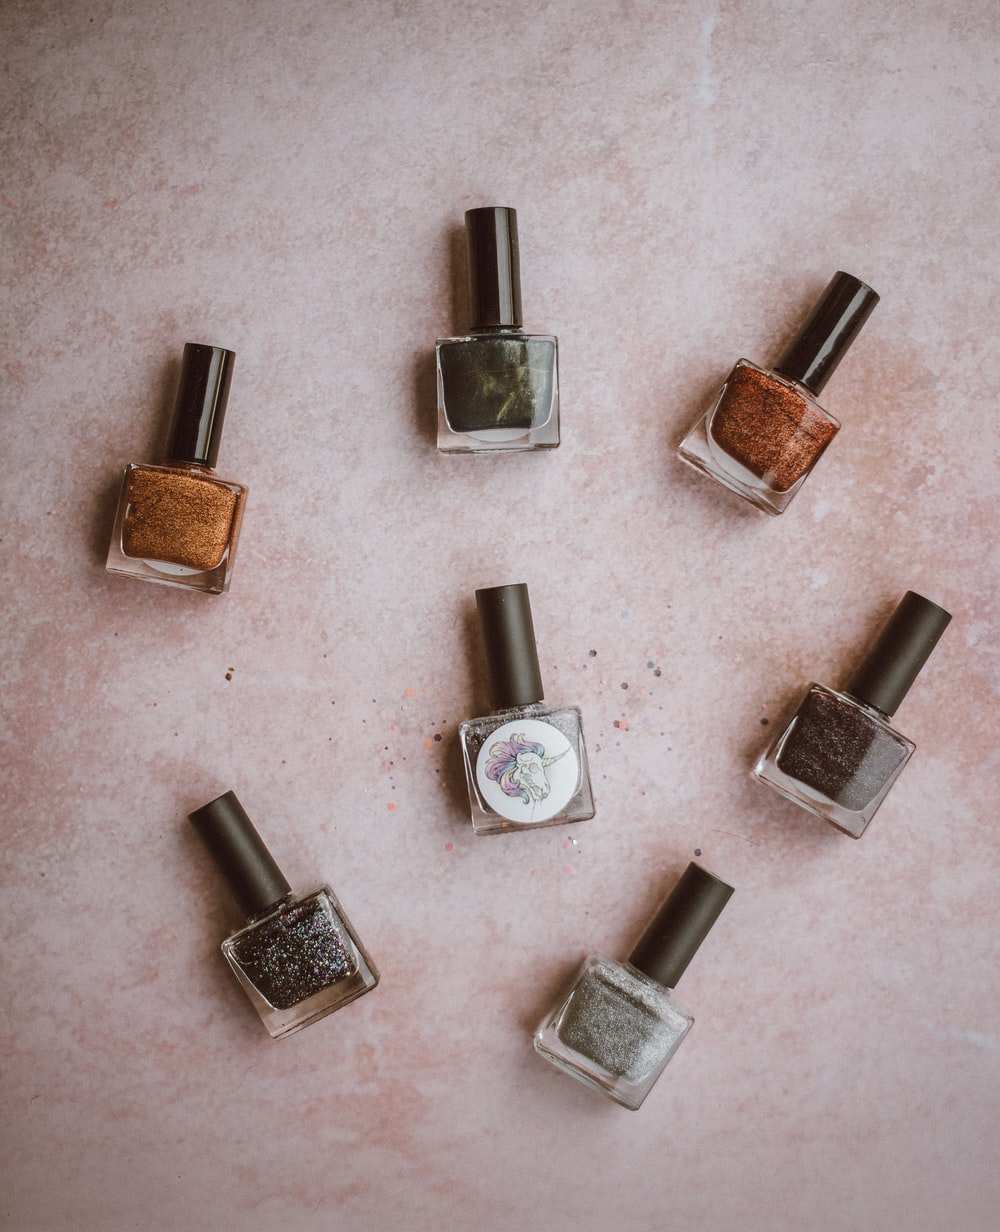 brown, black, and grey nail polish bottles